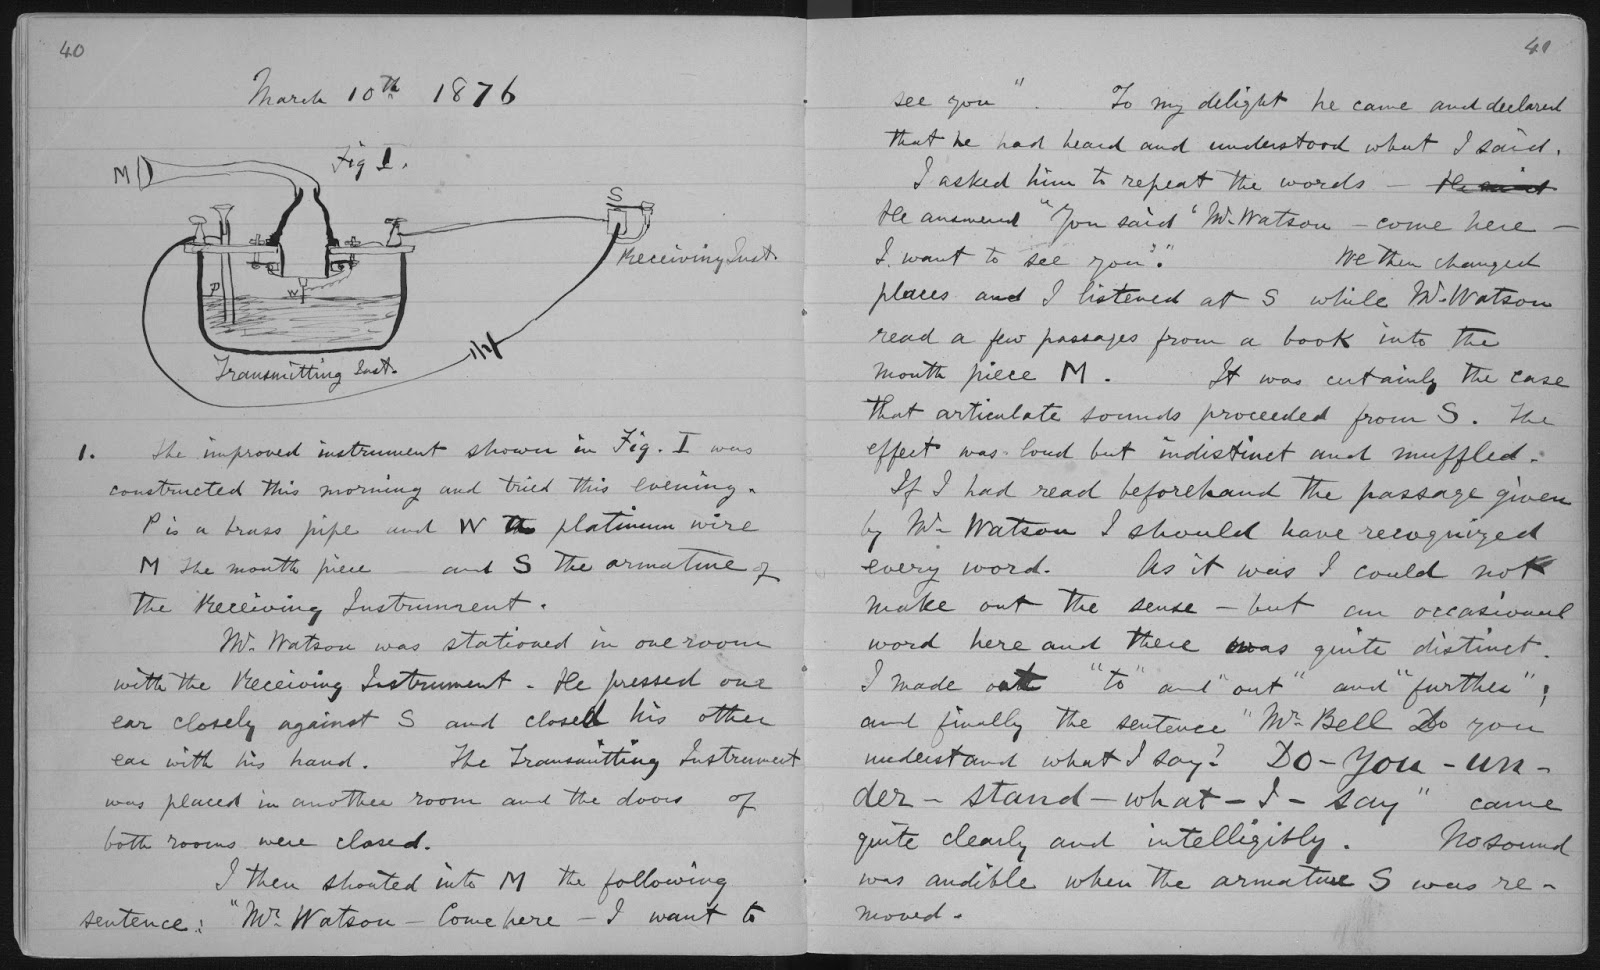 alexander graham bell bell s experimental notebook 10 1876 box 271 subject file scientific notebooks 1876 alexander graham bell family papers manuscript division